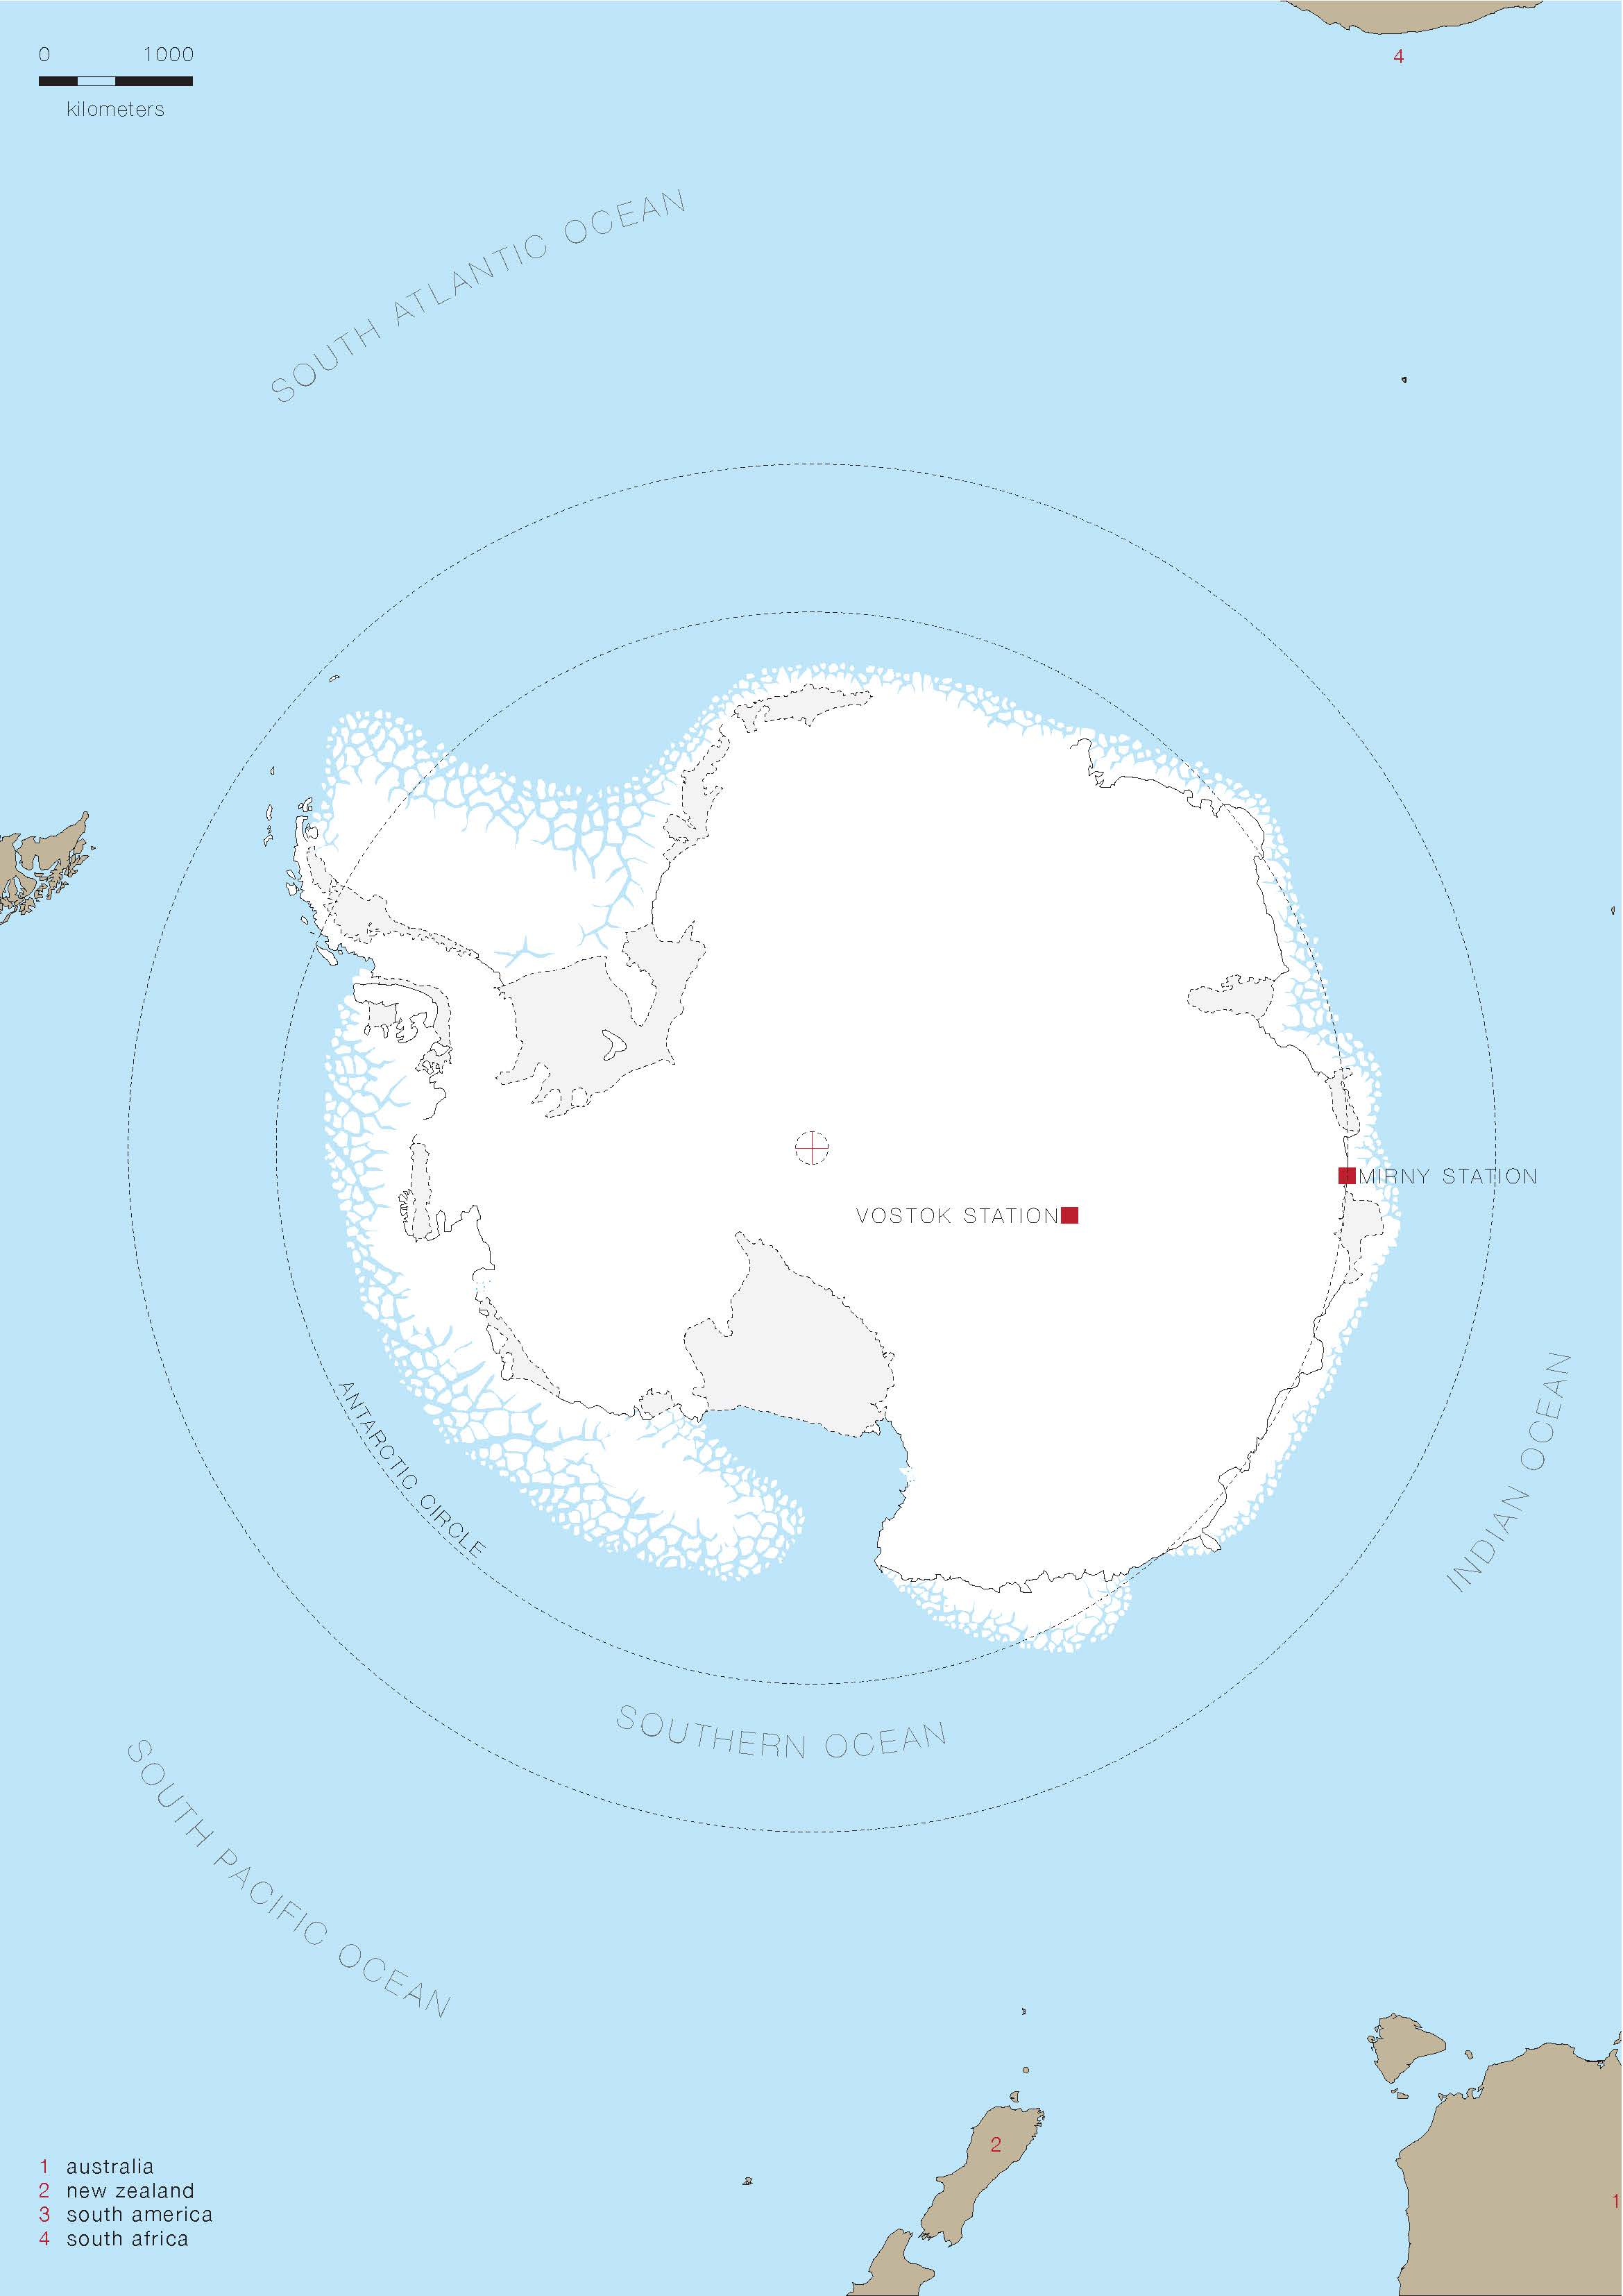 ANTARCTICA_VOSTOK_LOCATION_MAP.jpg